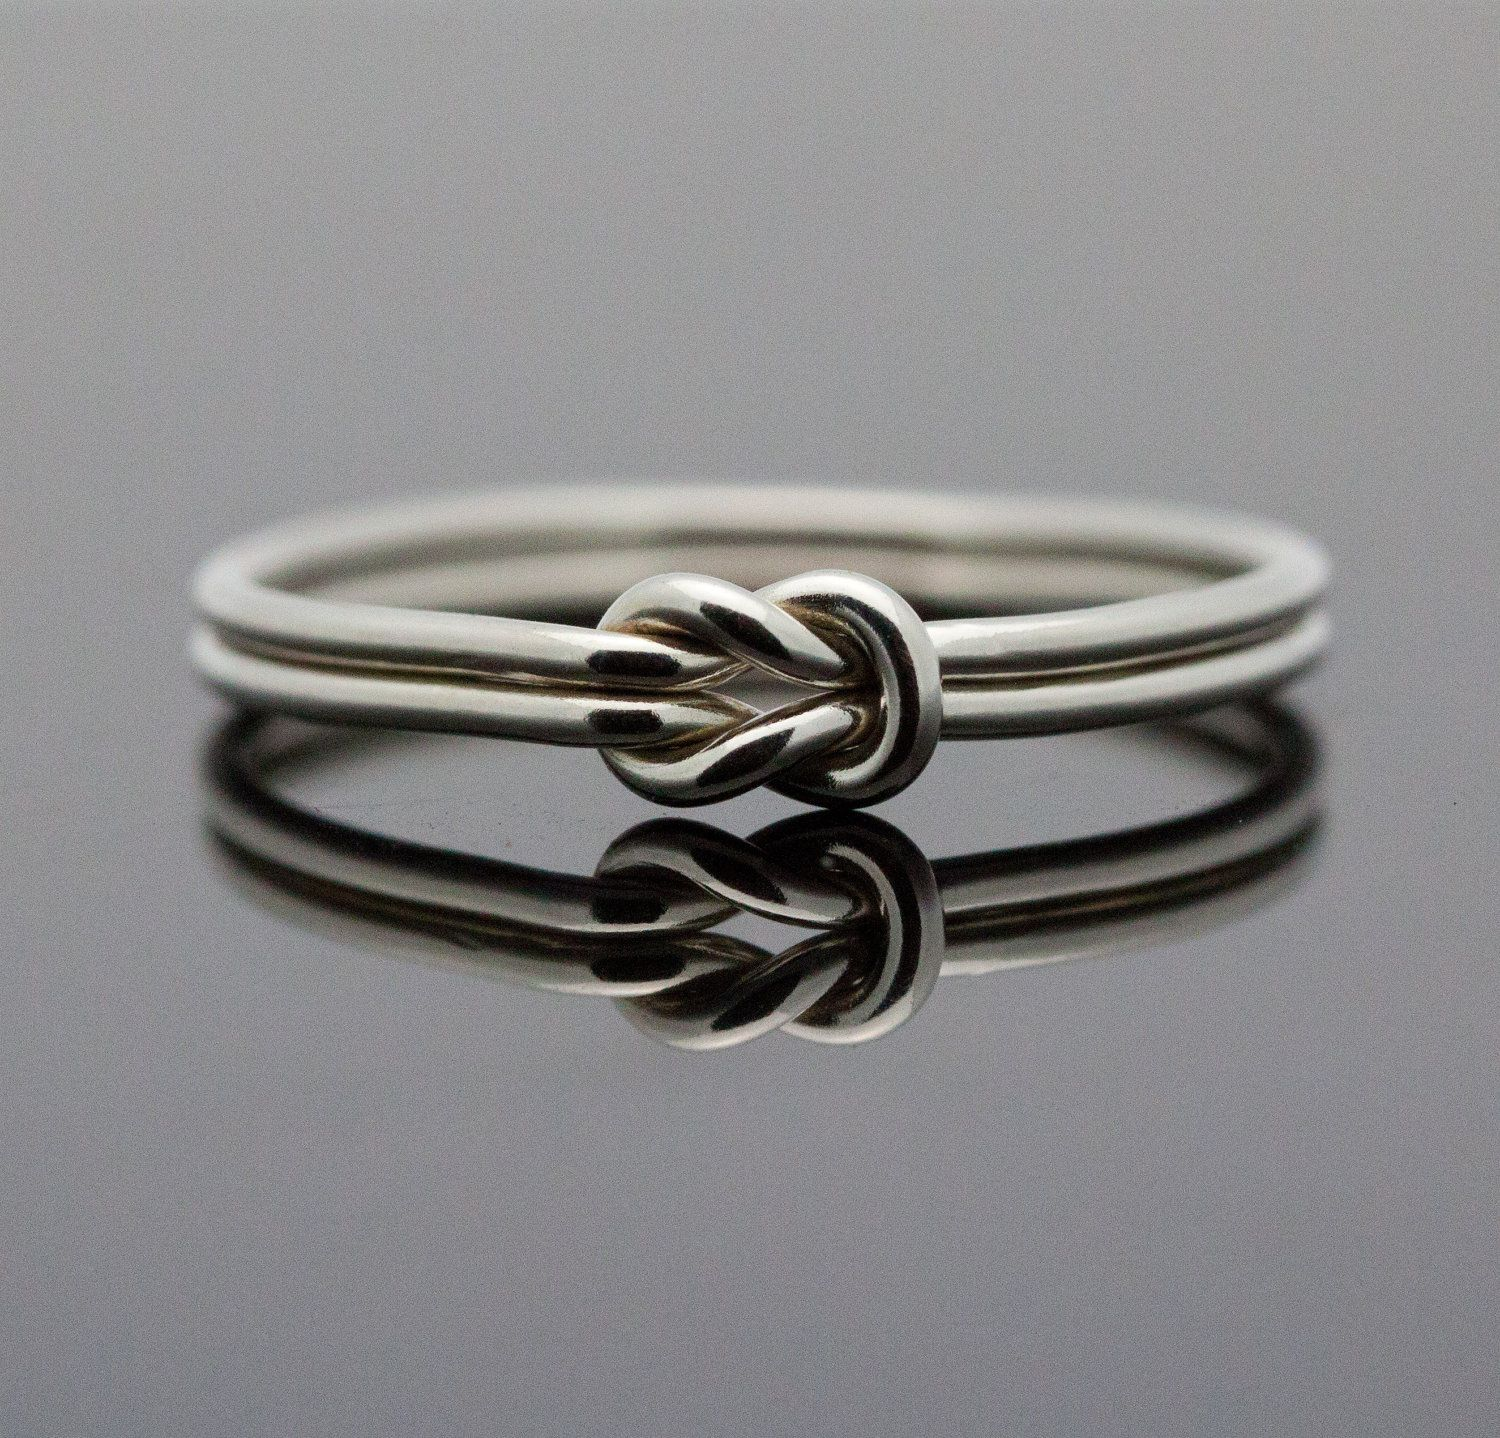 pin karat gold love promise knot infinity solid ring